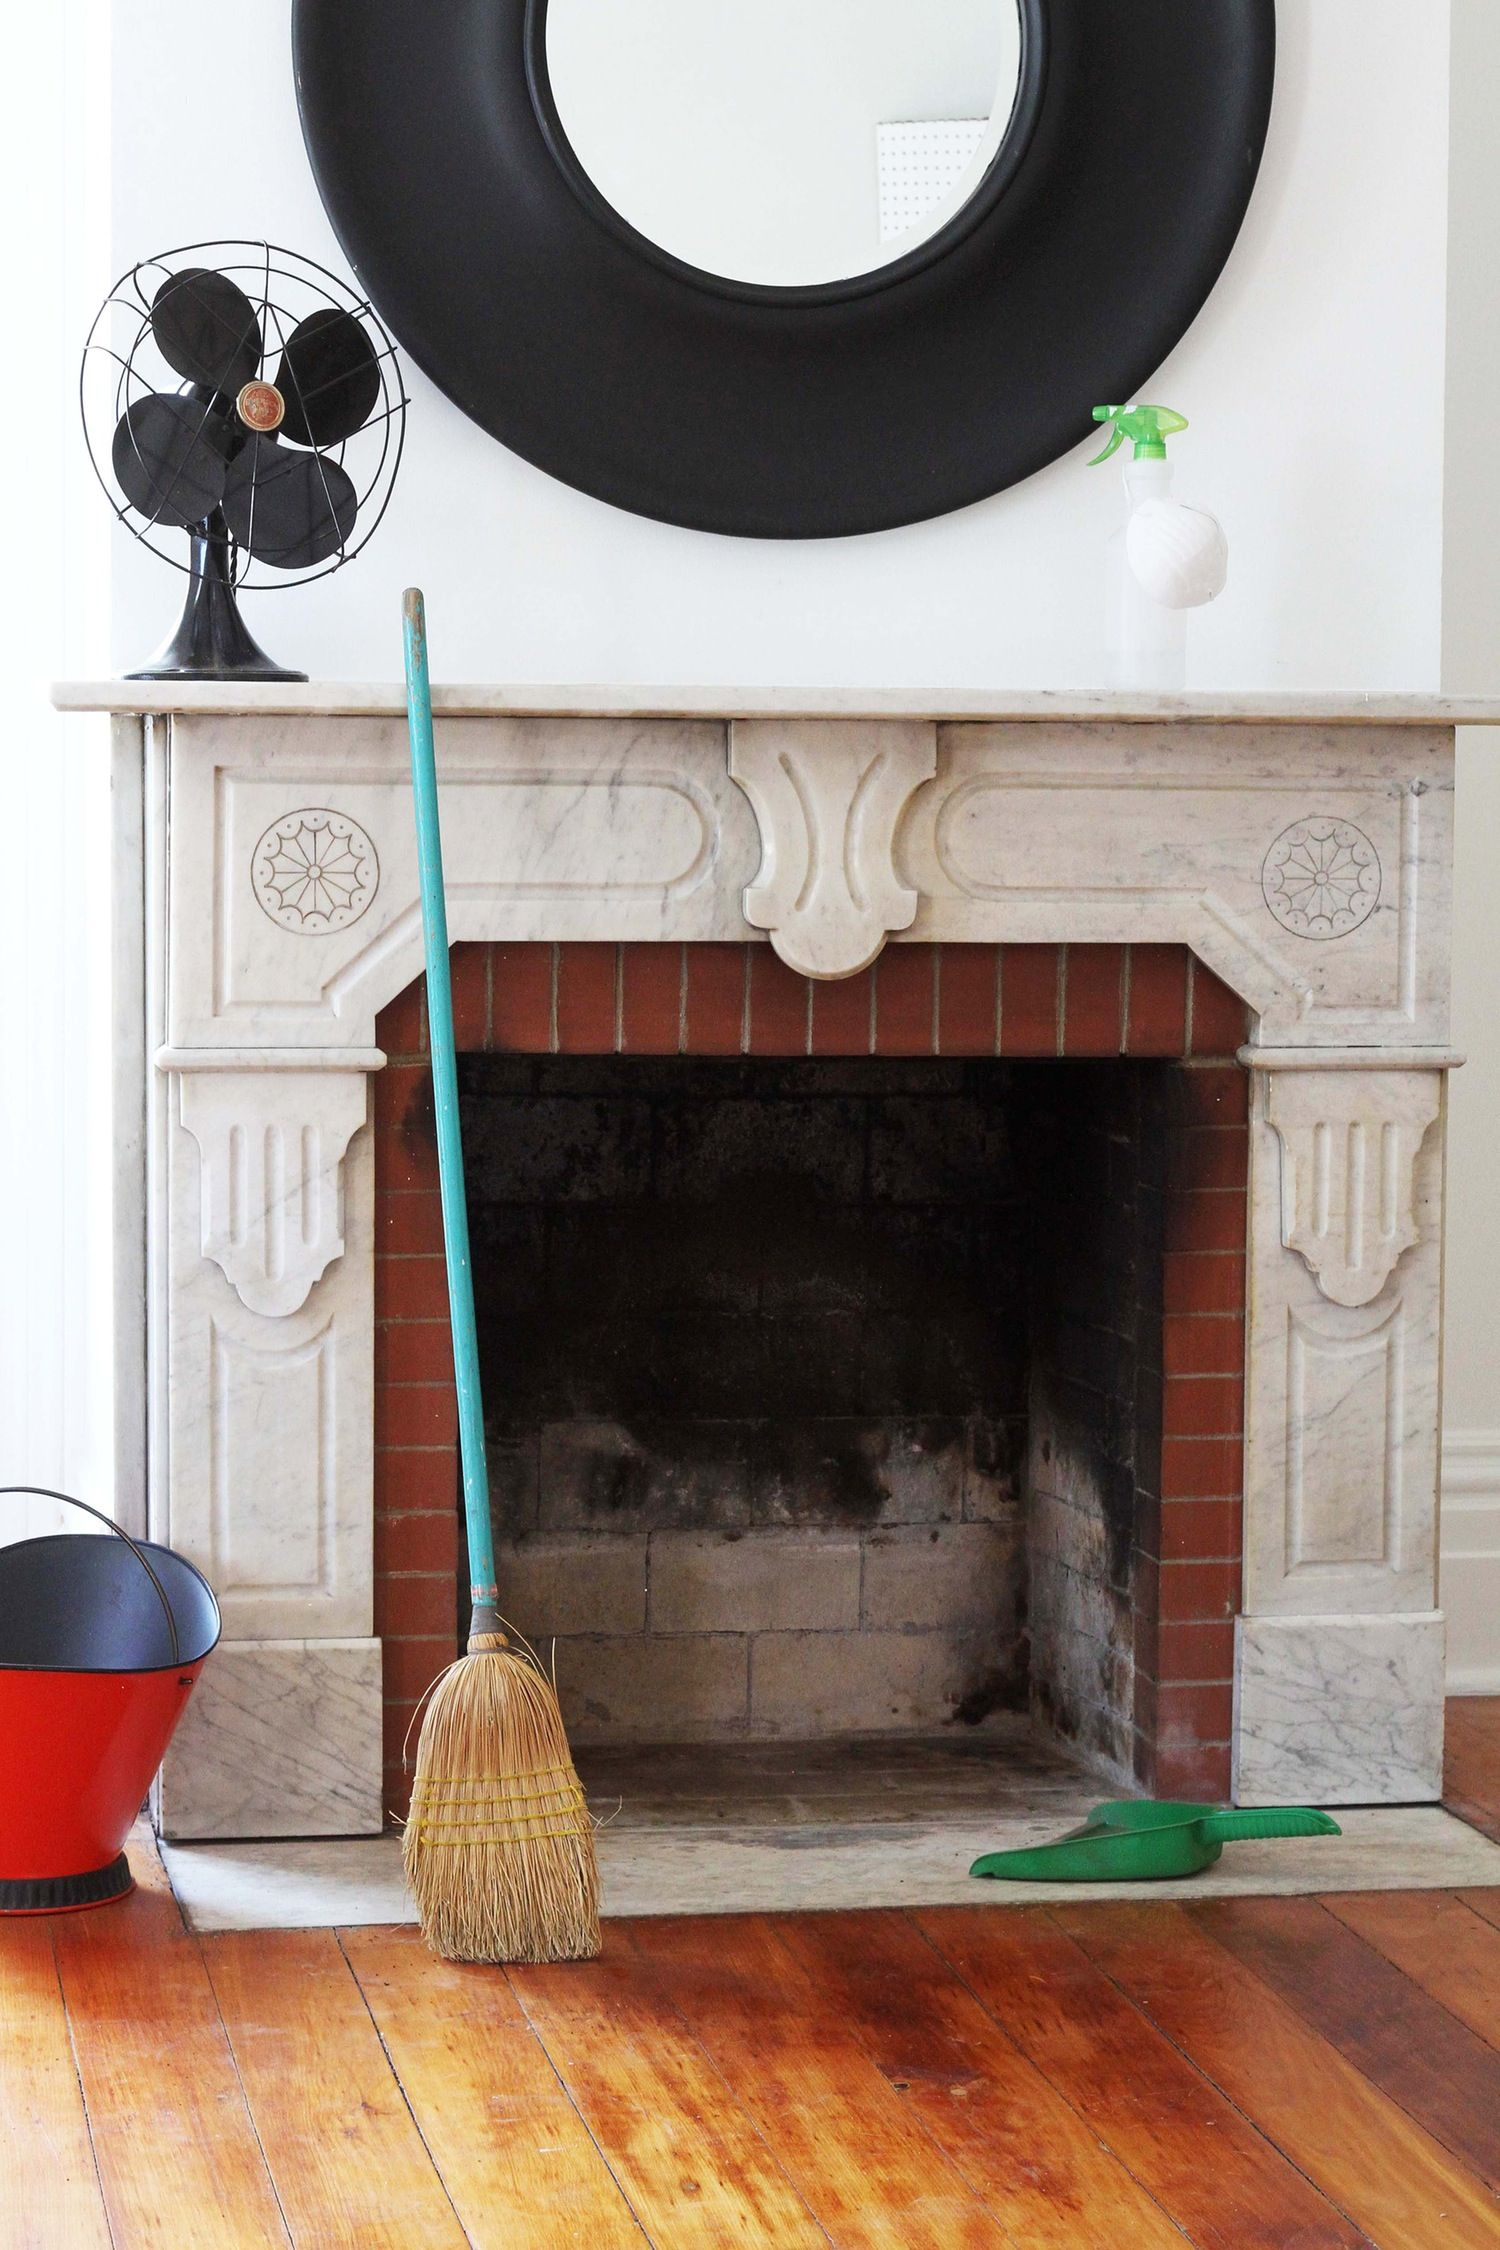 How To Clean A Fireplace Cleaning Painted Walls Cleaning Hacks Deep Cleaning Tips